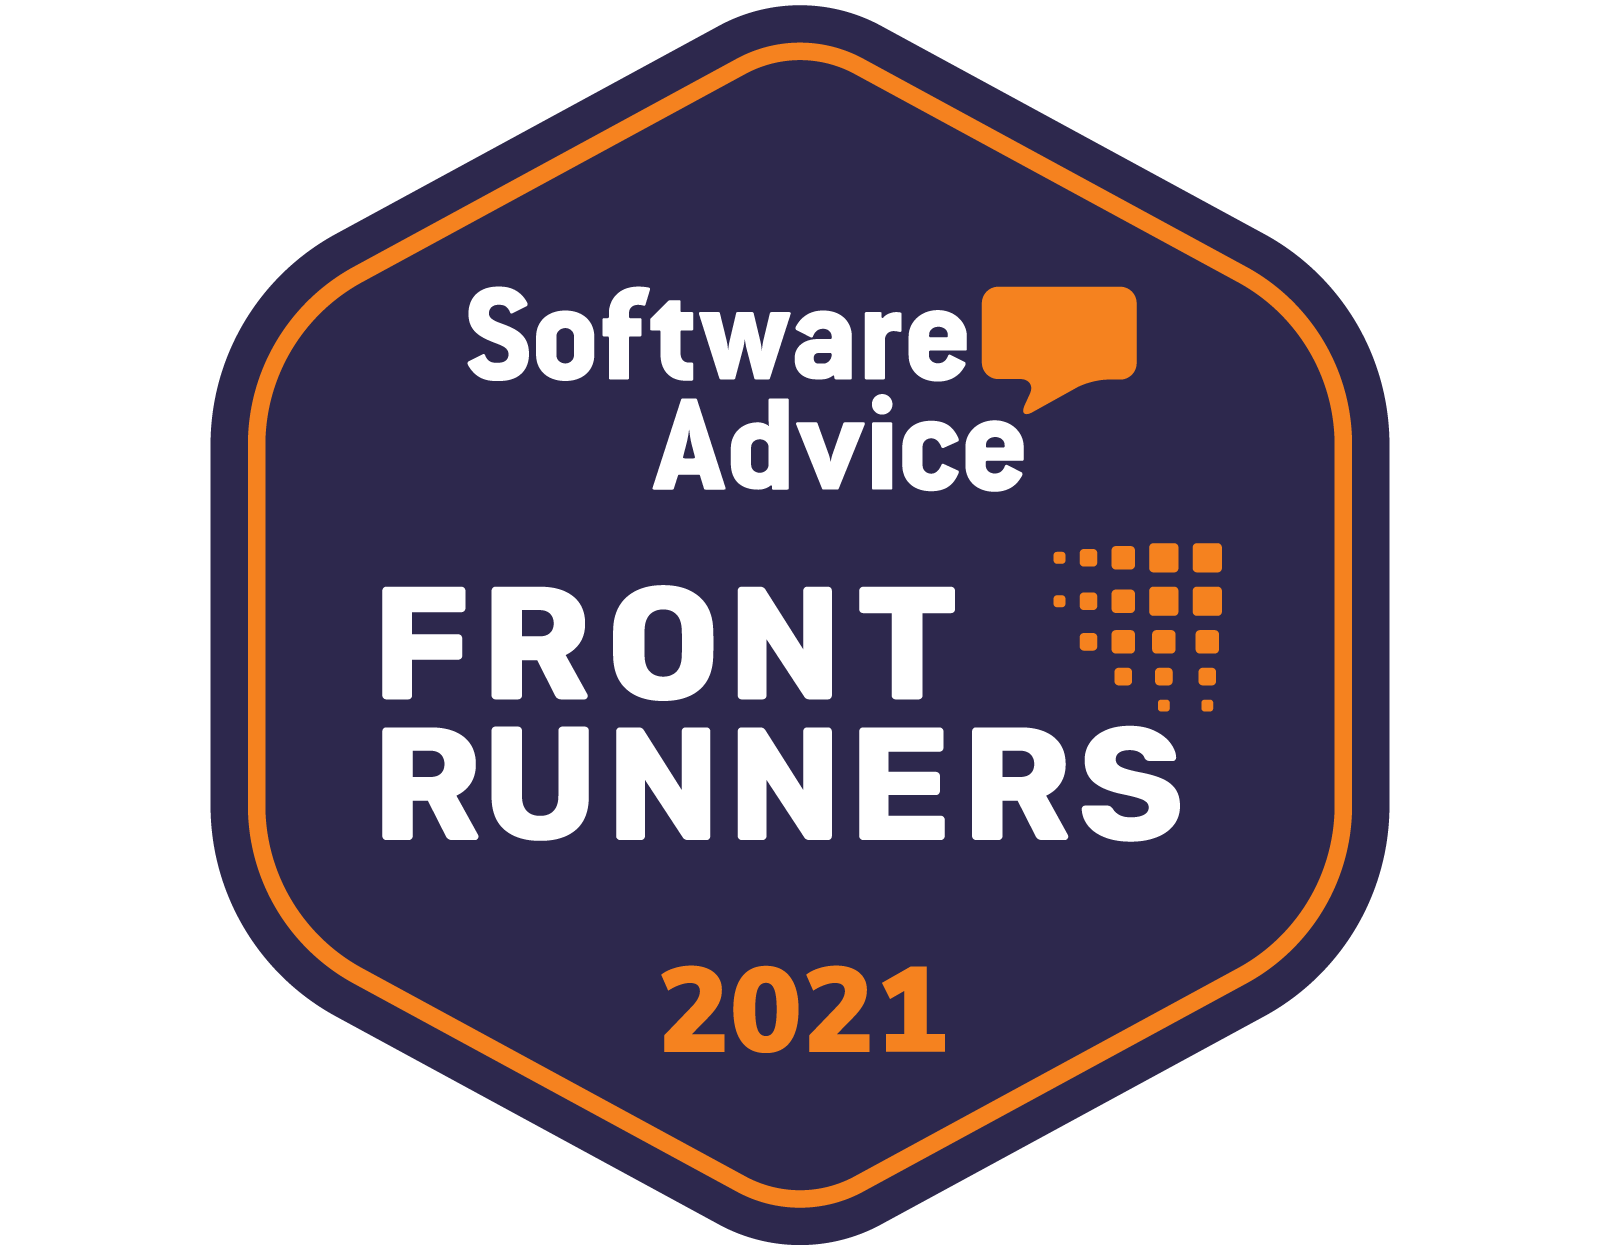 Software Advice Front Runners badge for 2021